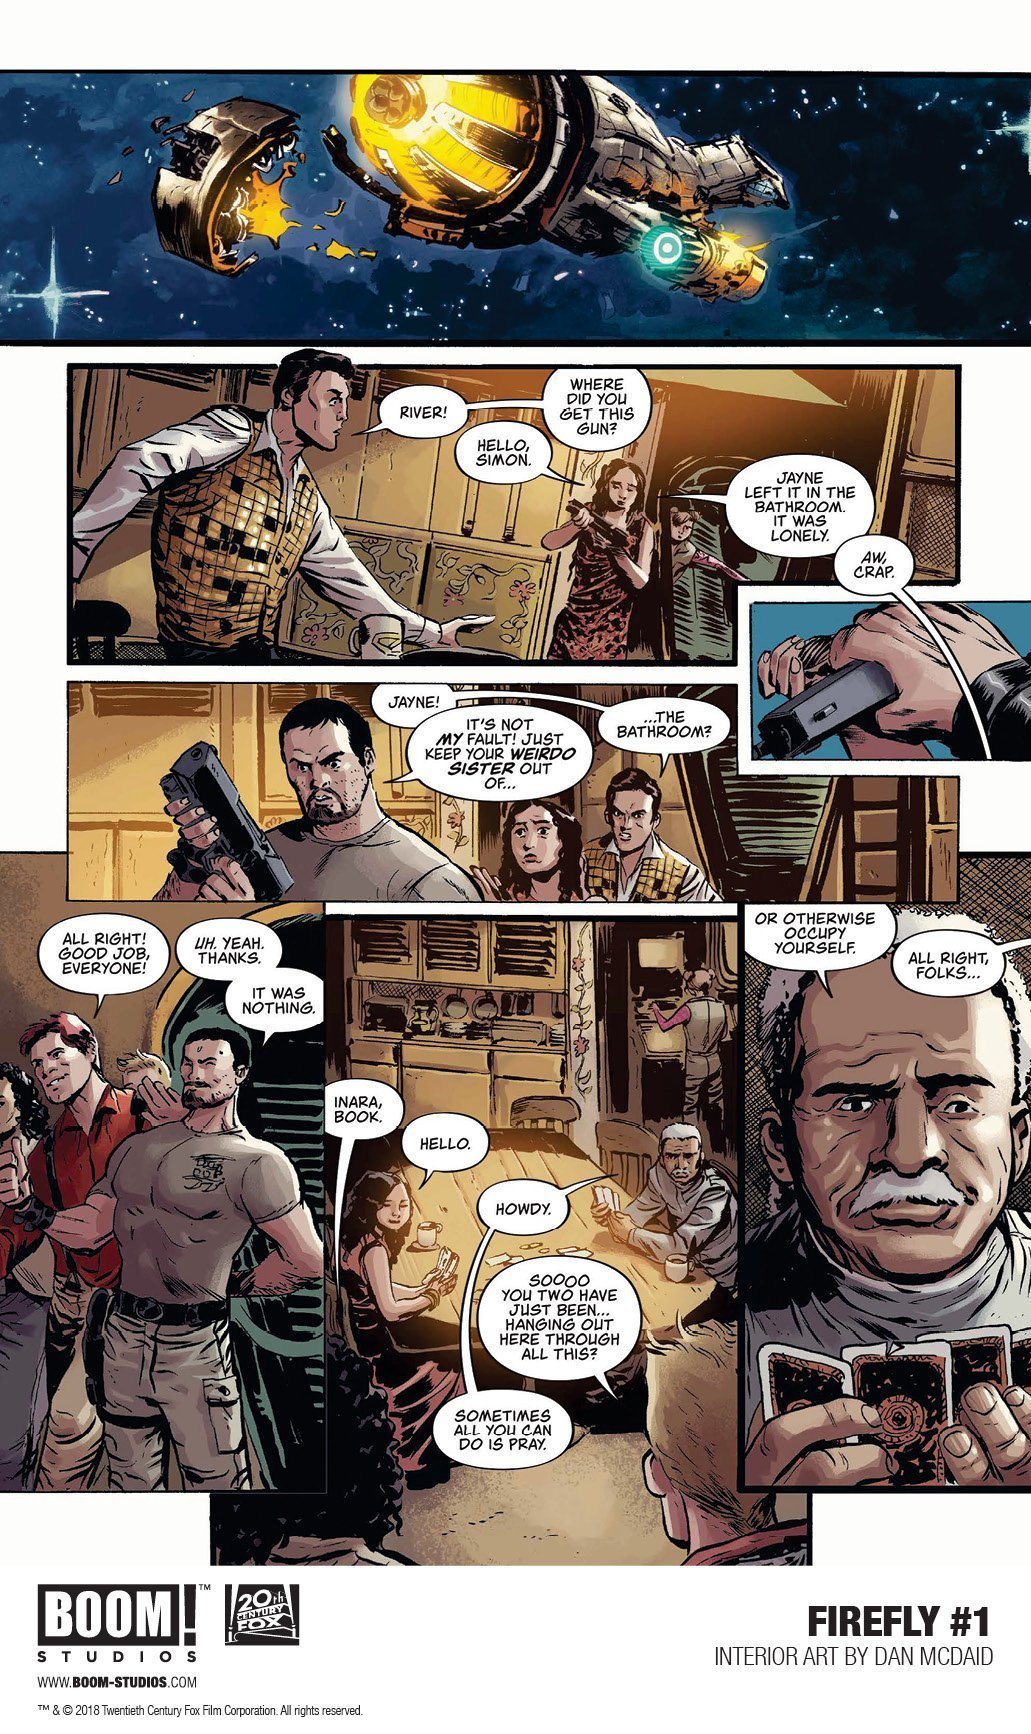 Firefly: A Space Western Comics For Adrenaline Junkies 5